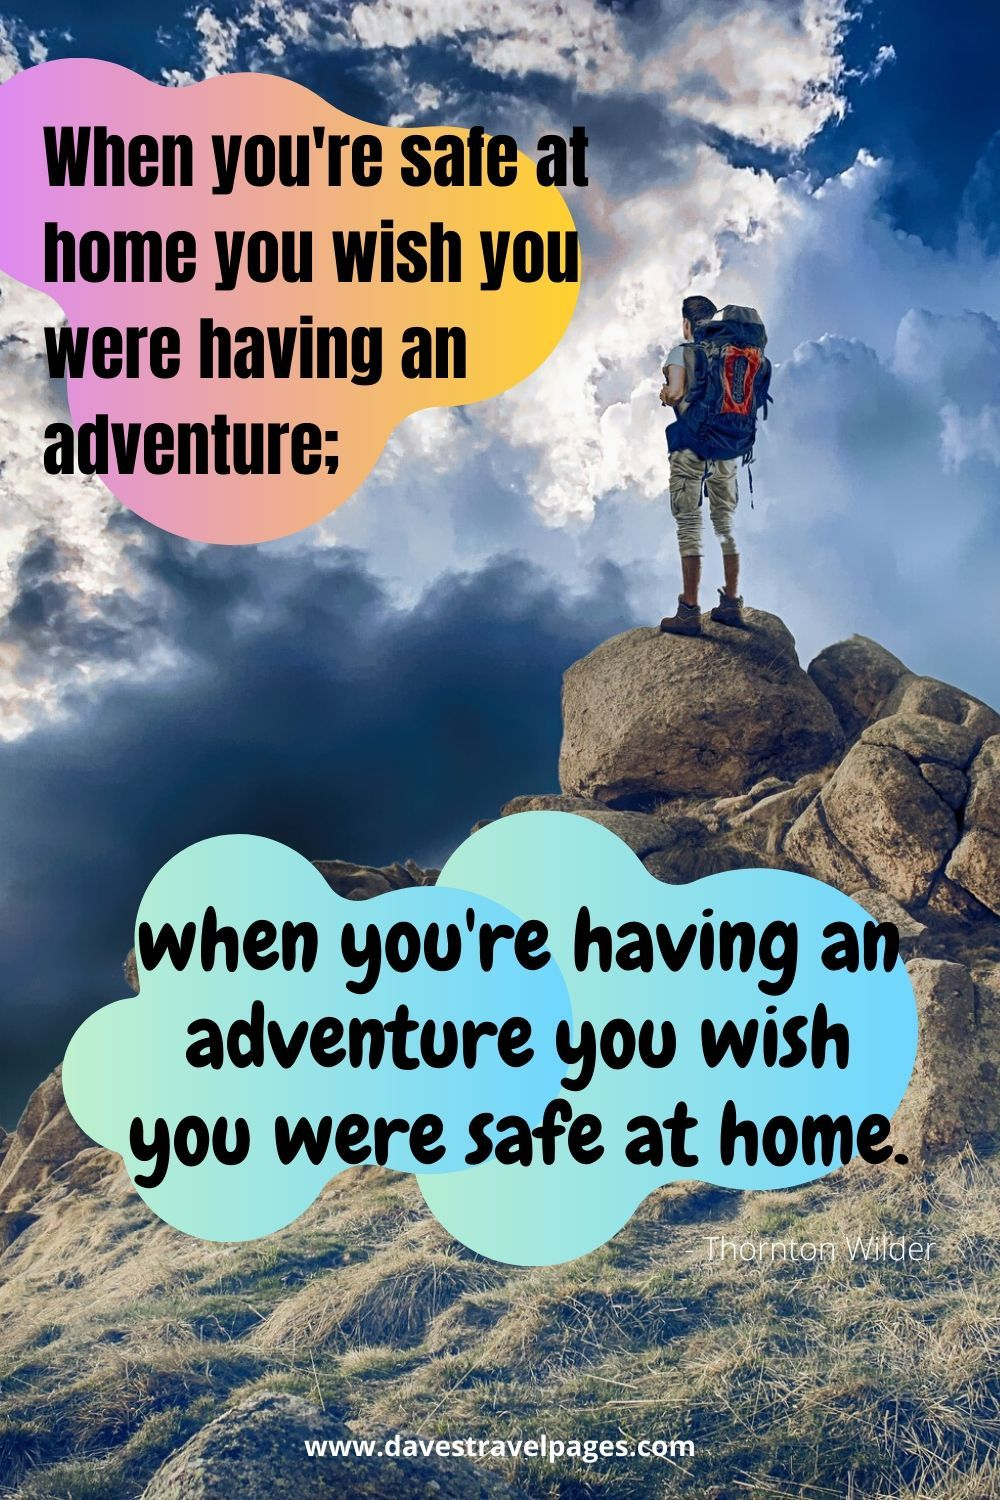 Quotes About Adventure - 50 Best Travel and Adventure ...